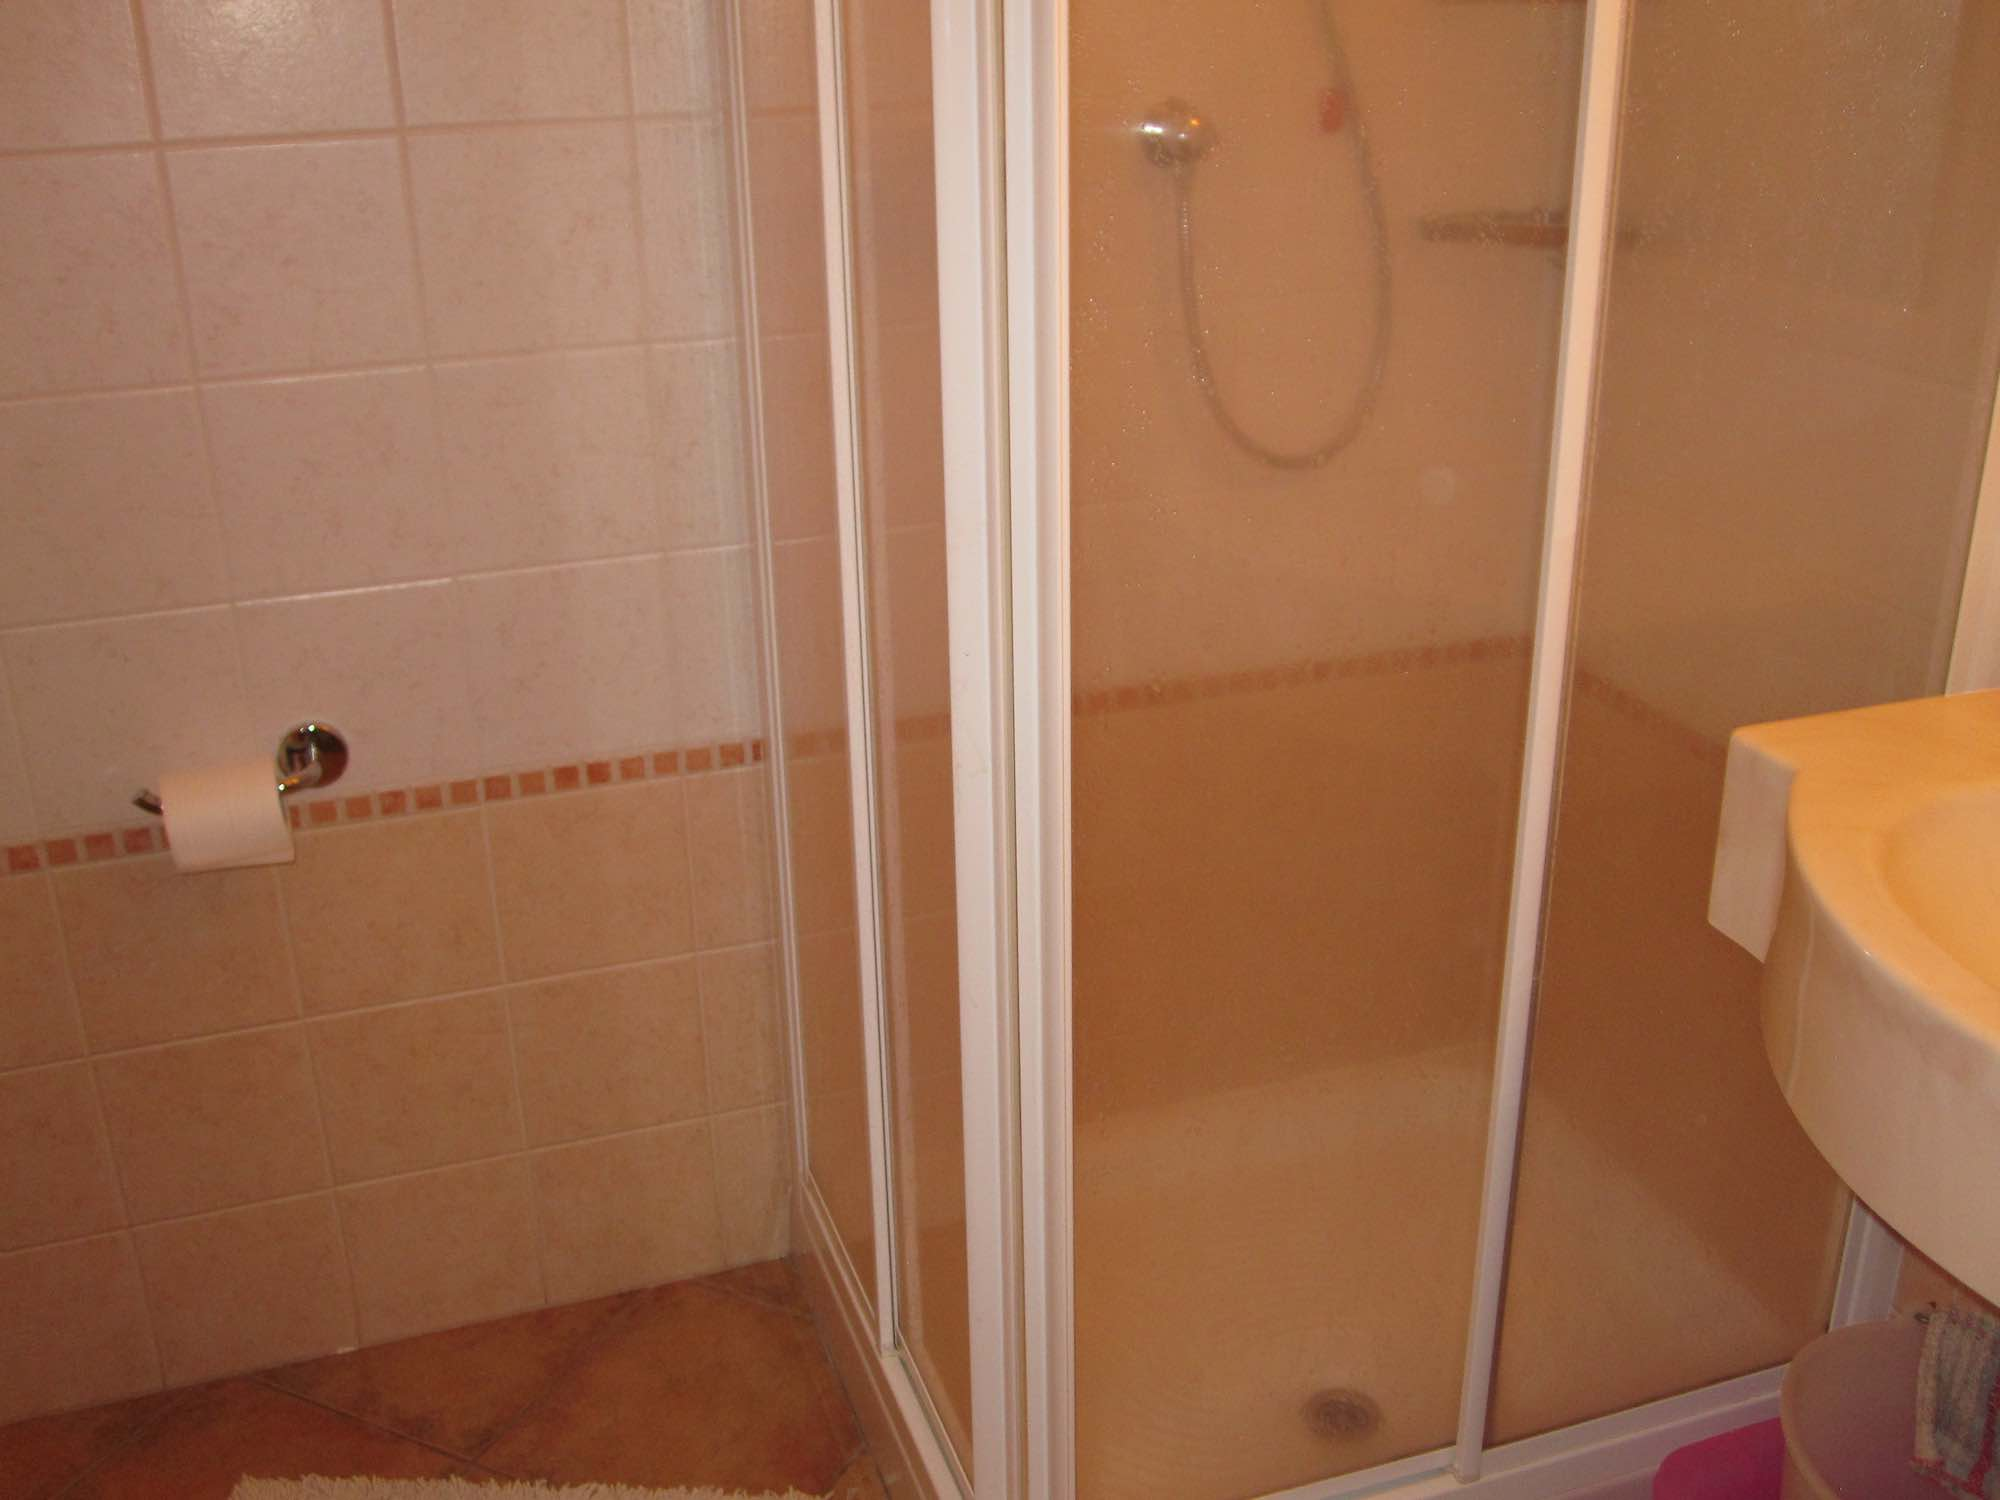 Baita La Broina - Via Florin, 24 - Apartment - Appartamento 5 4